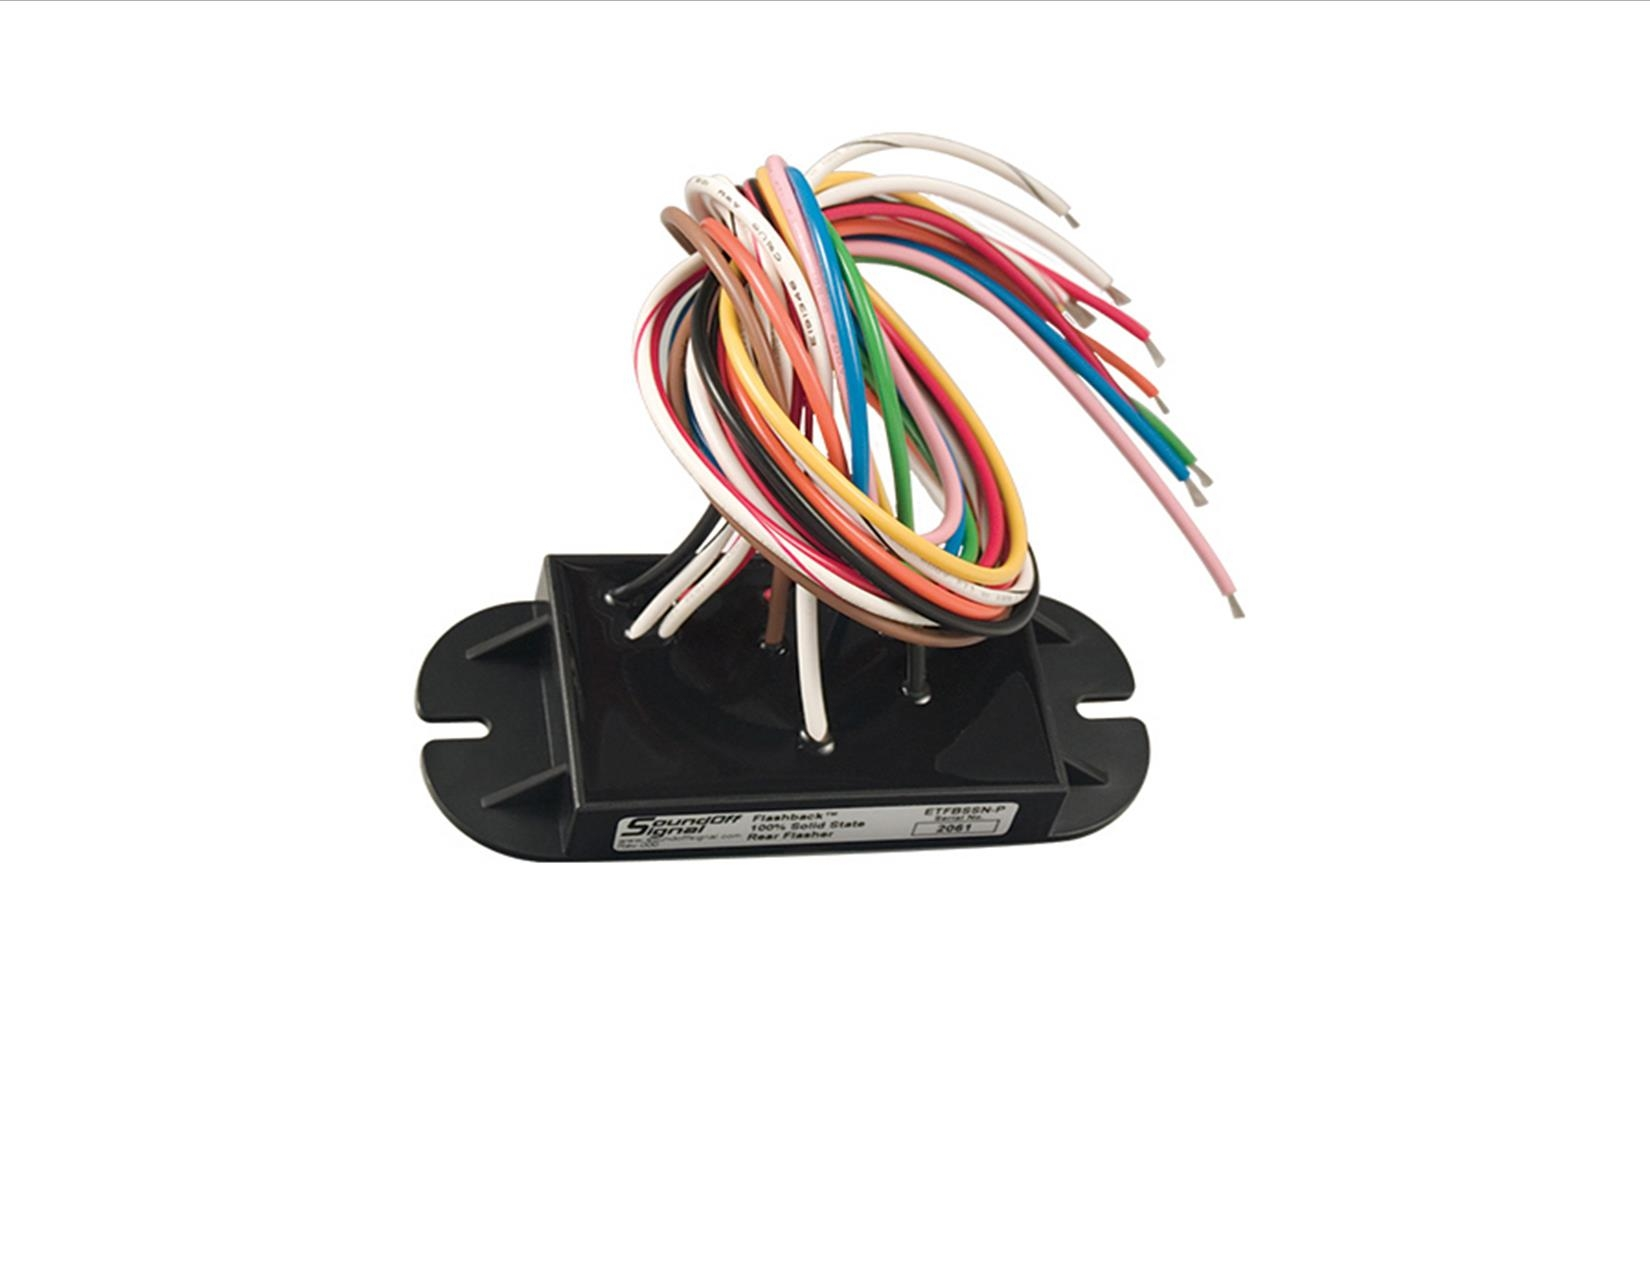 Sound Off ETFBSSNP flasher tail light flasher soundoff signal wiring diagram at crackthecode.co